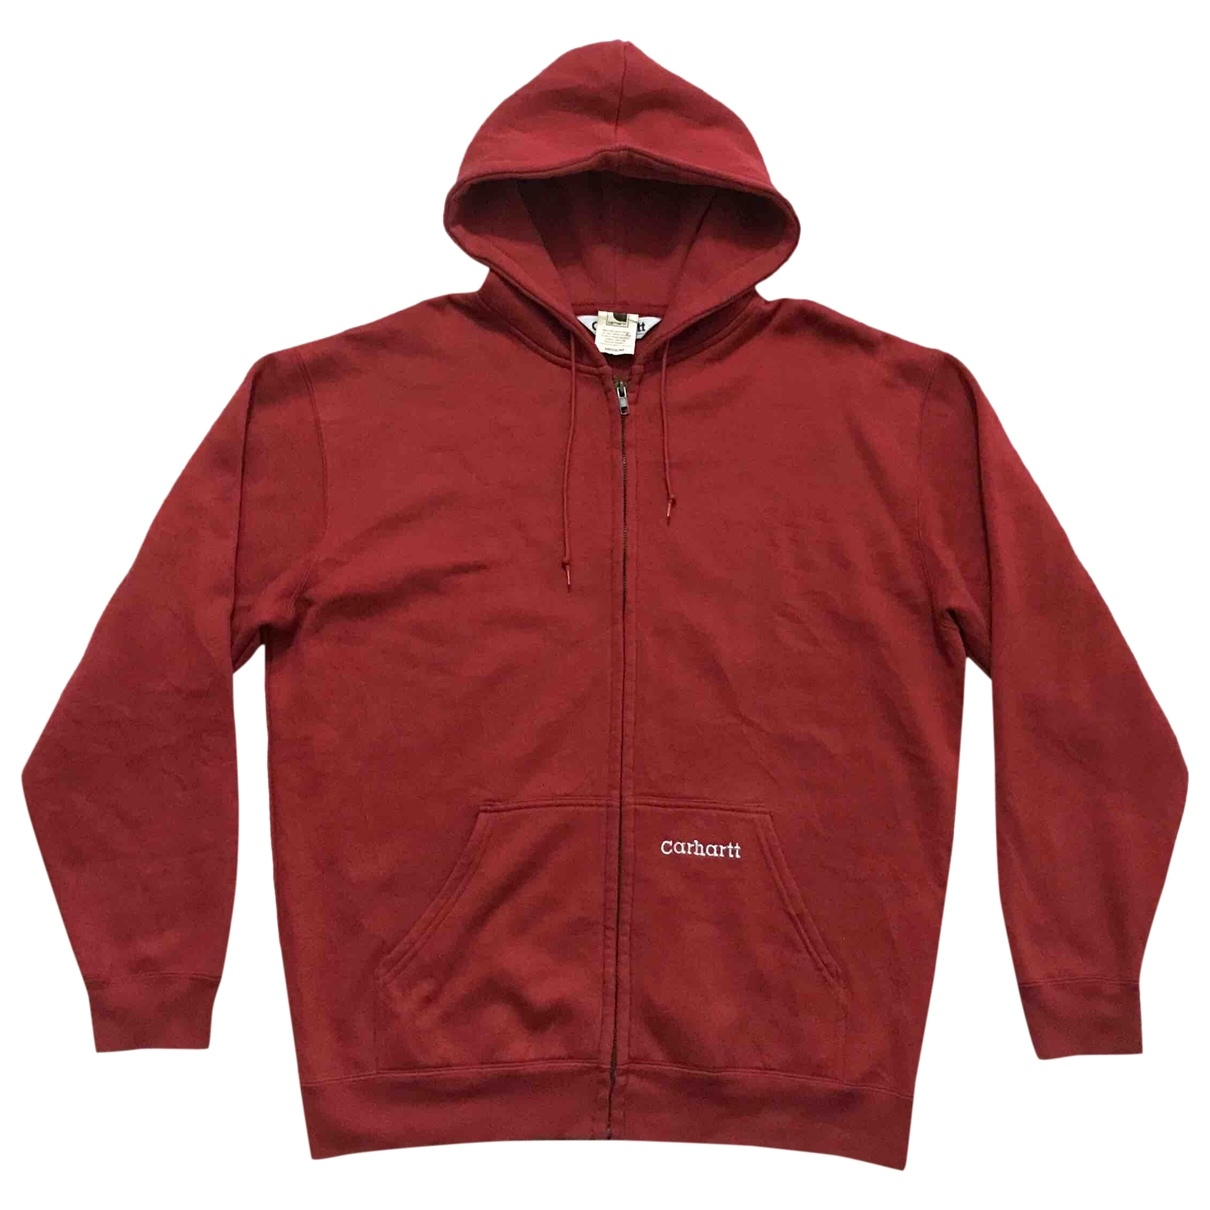 Carhartt \N Red Cotton jacket  for Men M International